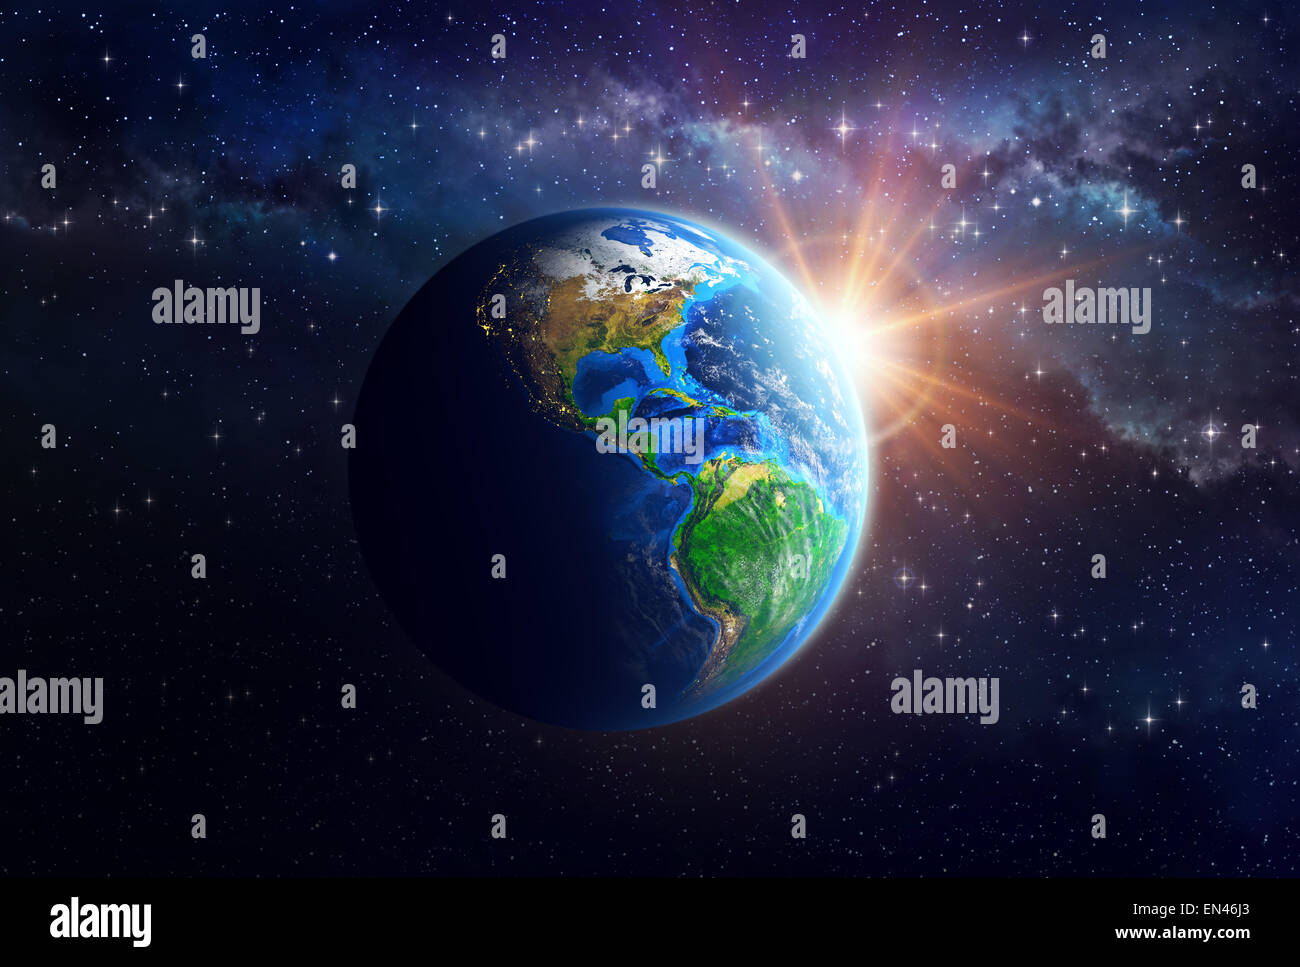 Illuminated face of the Earth in space. Detailed view of American continent. Elements of this image furnished by - Stock Image